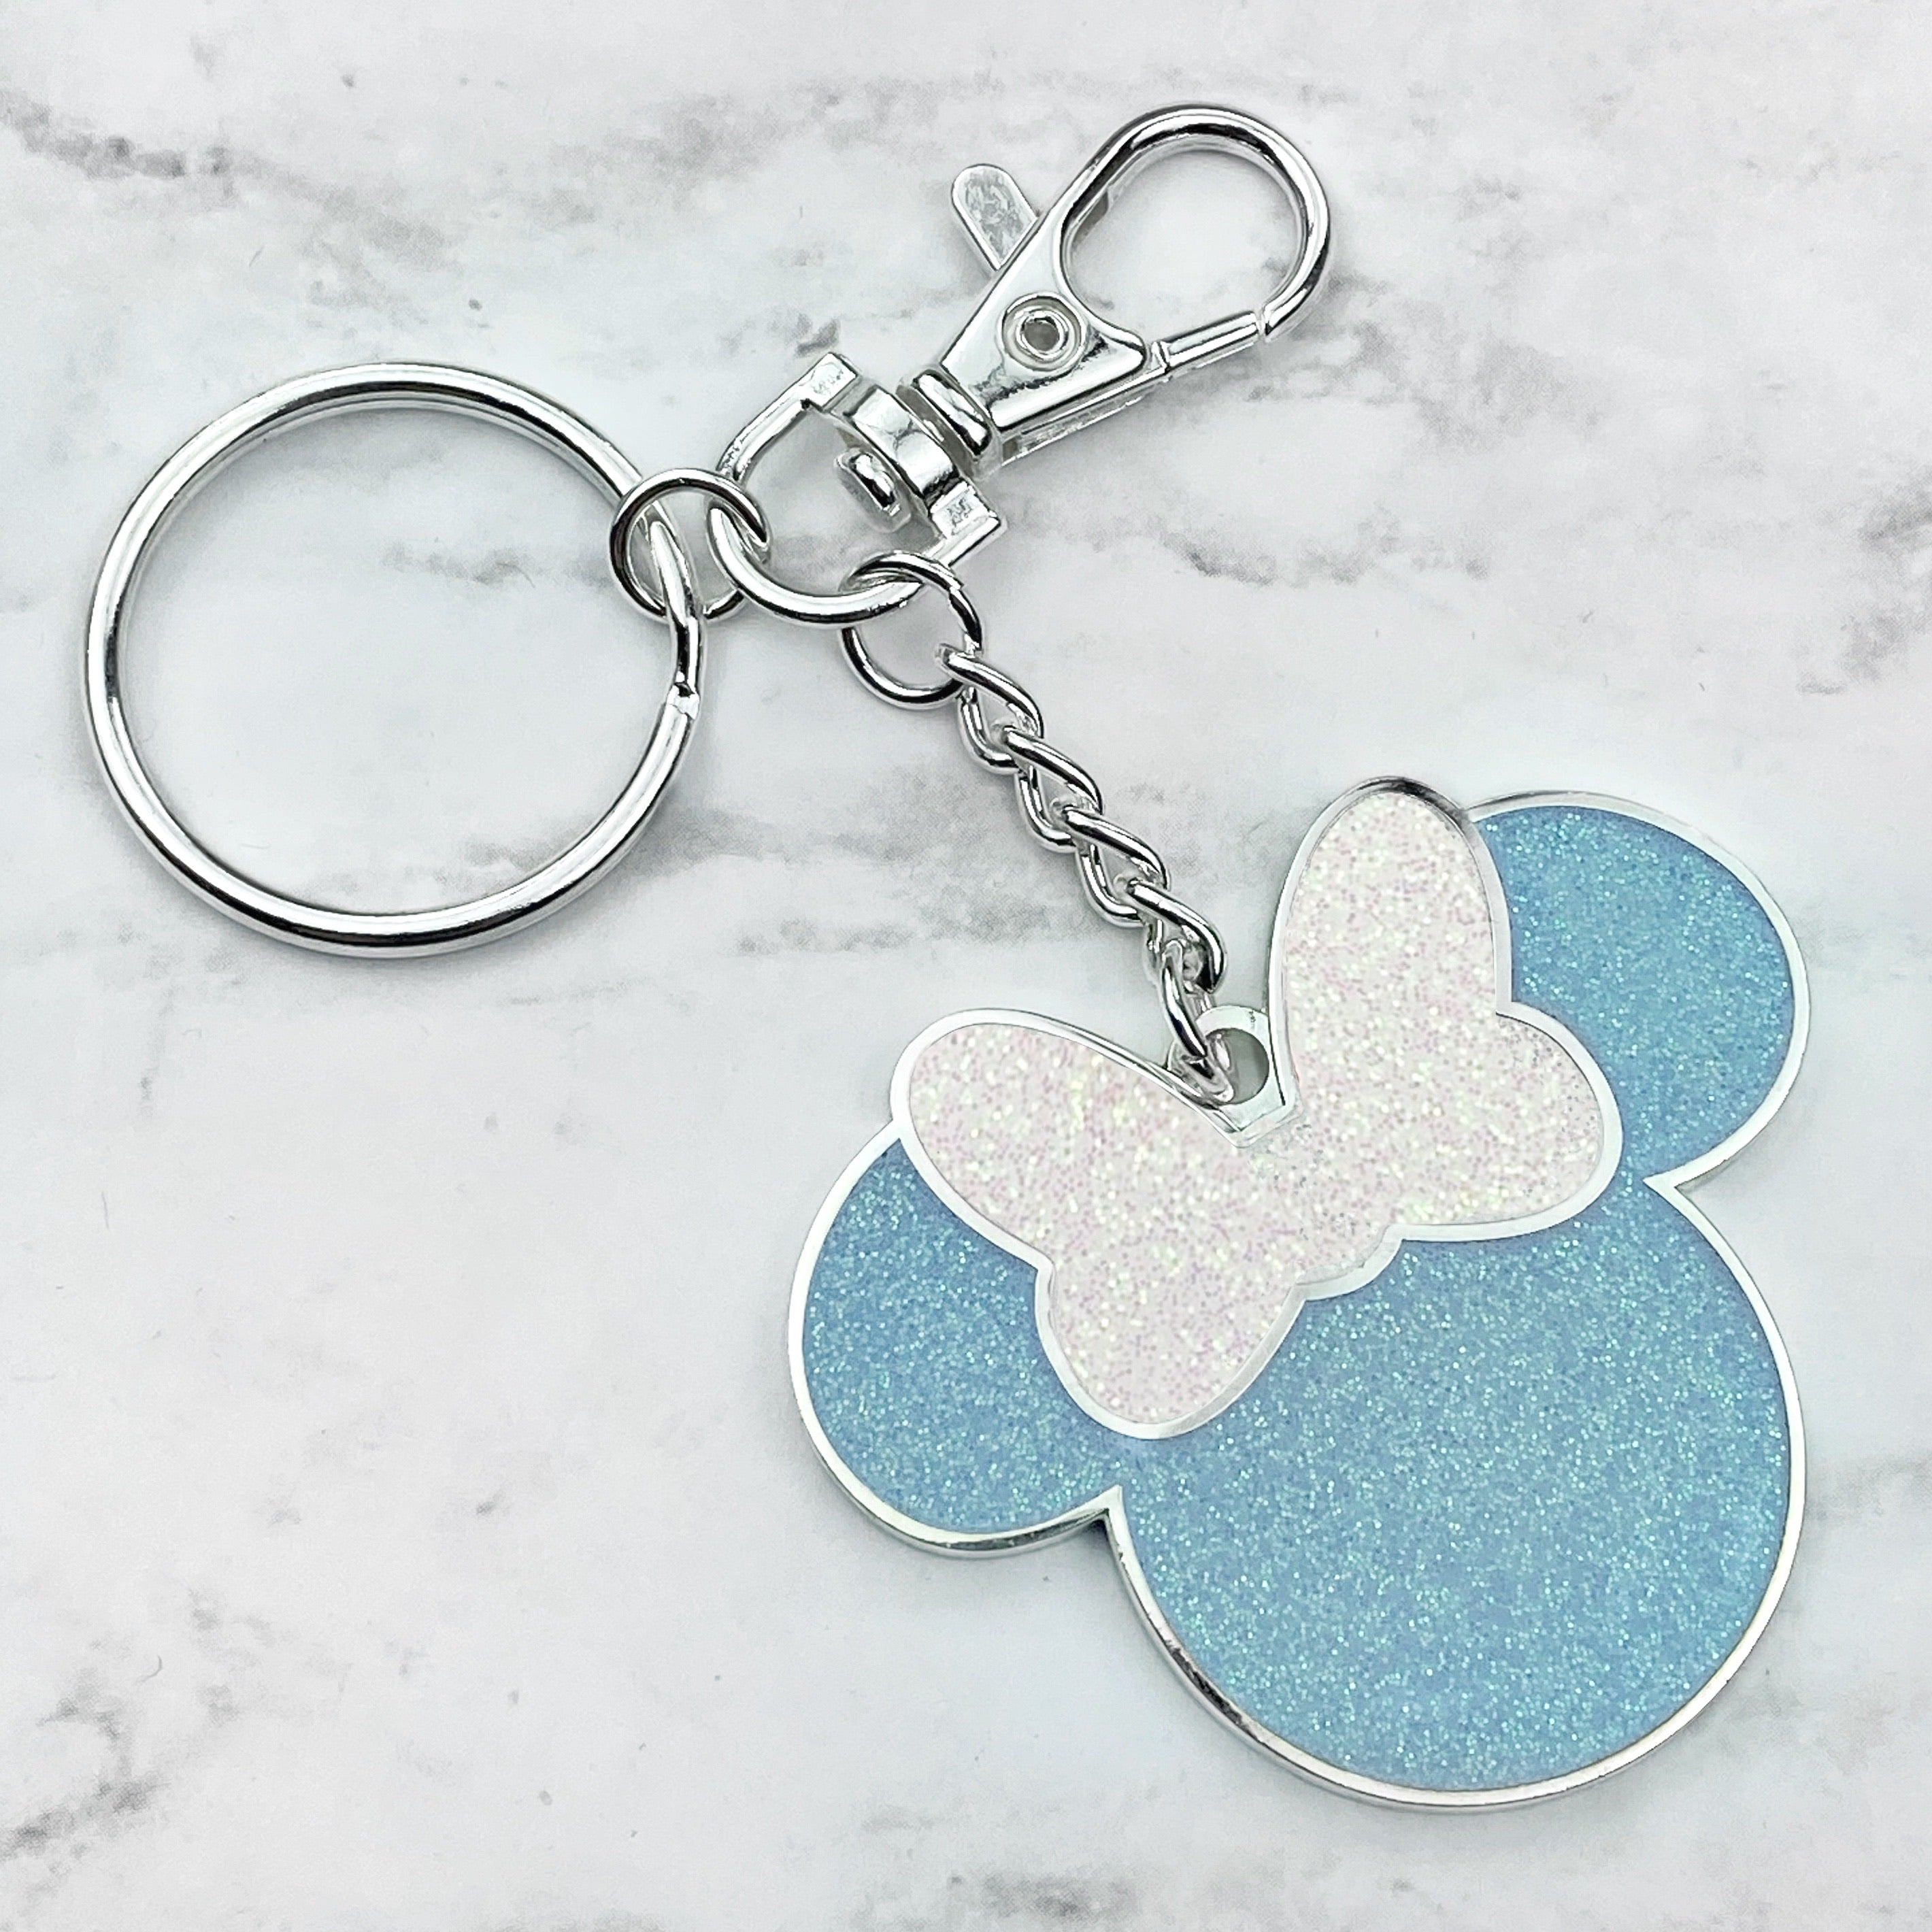 Keychain / Bag Charm *Miss Mouse* Cinderella Blue READY TO SHIP